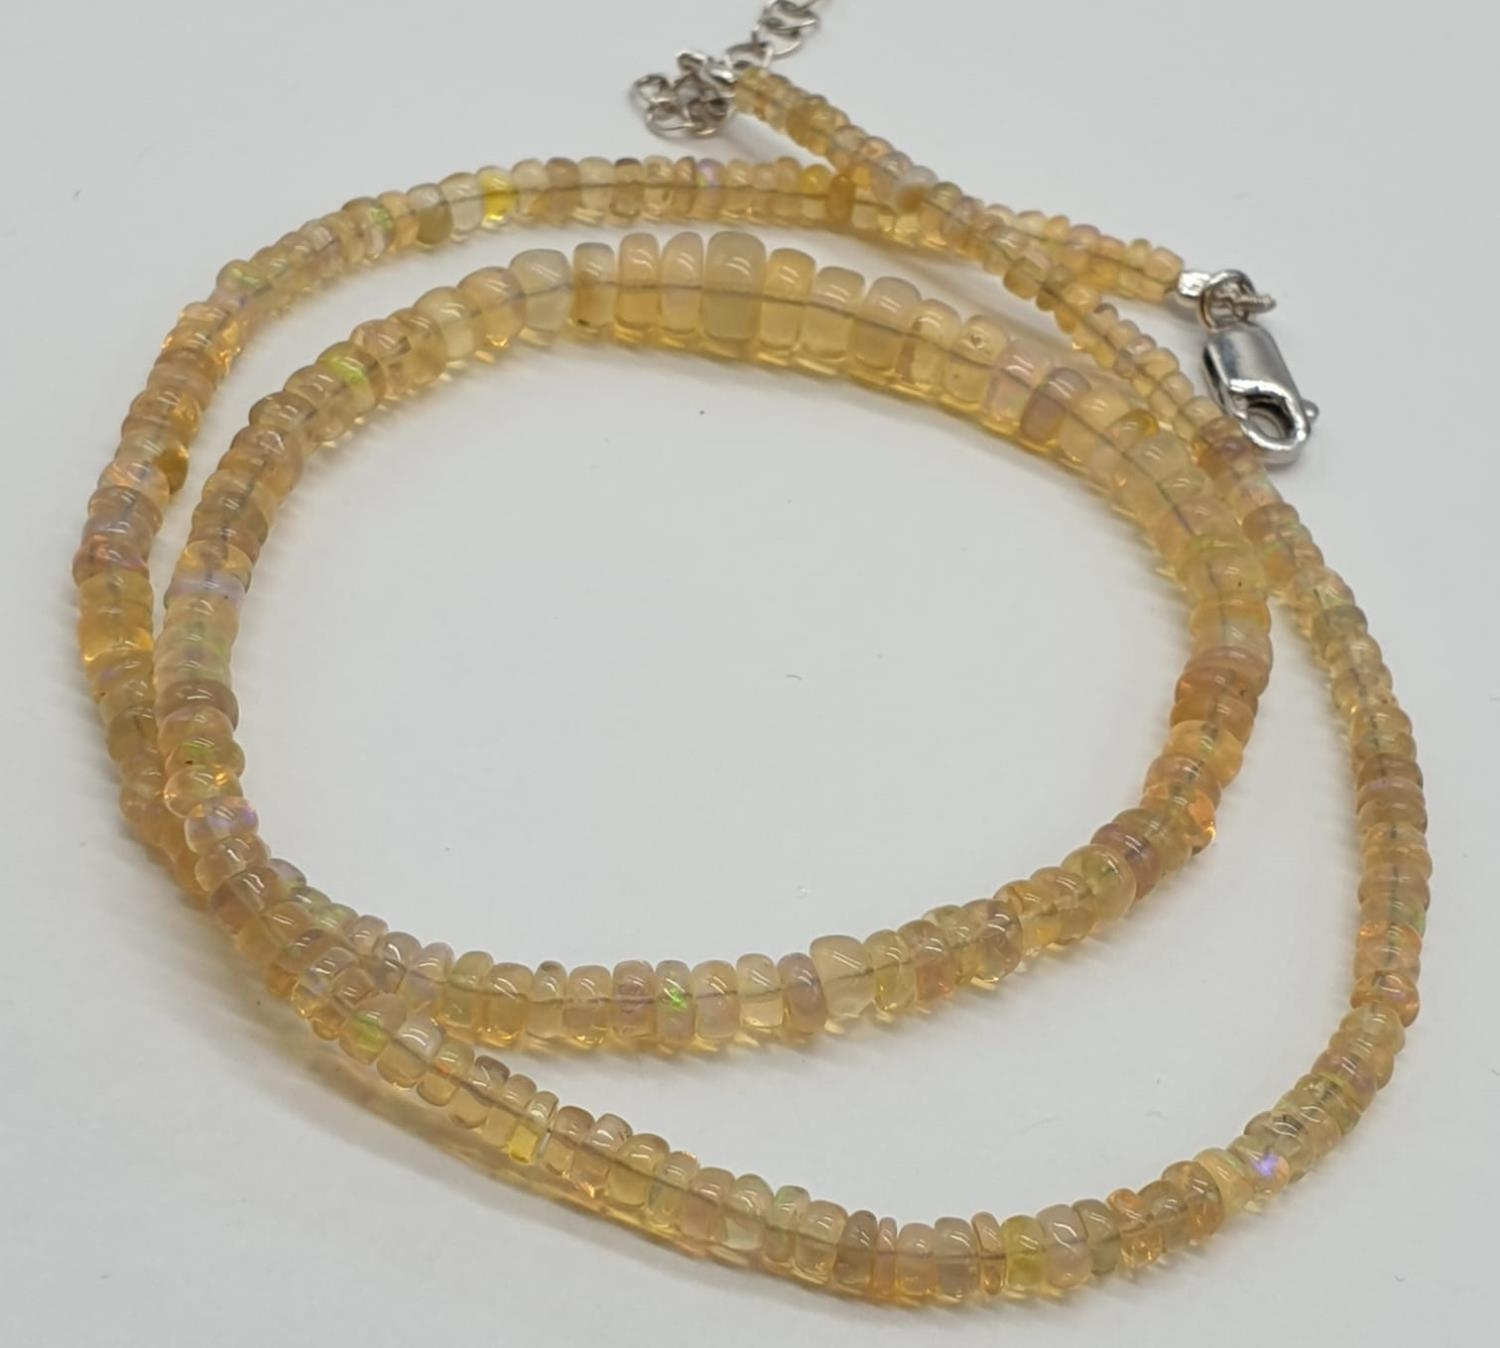 A fire opal gemstone single row necklace. Length 21cm, weight 9.16g. - Image 4 of 5